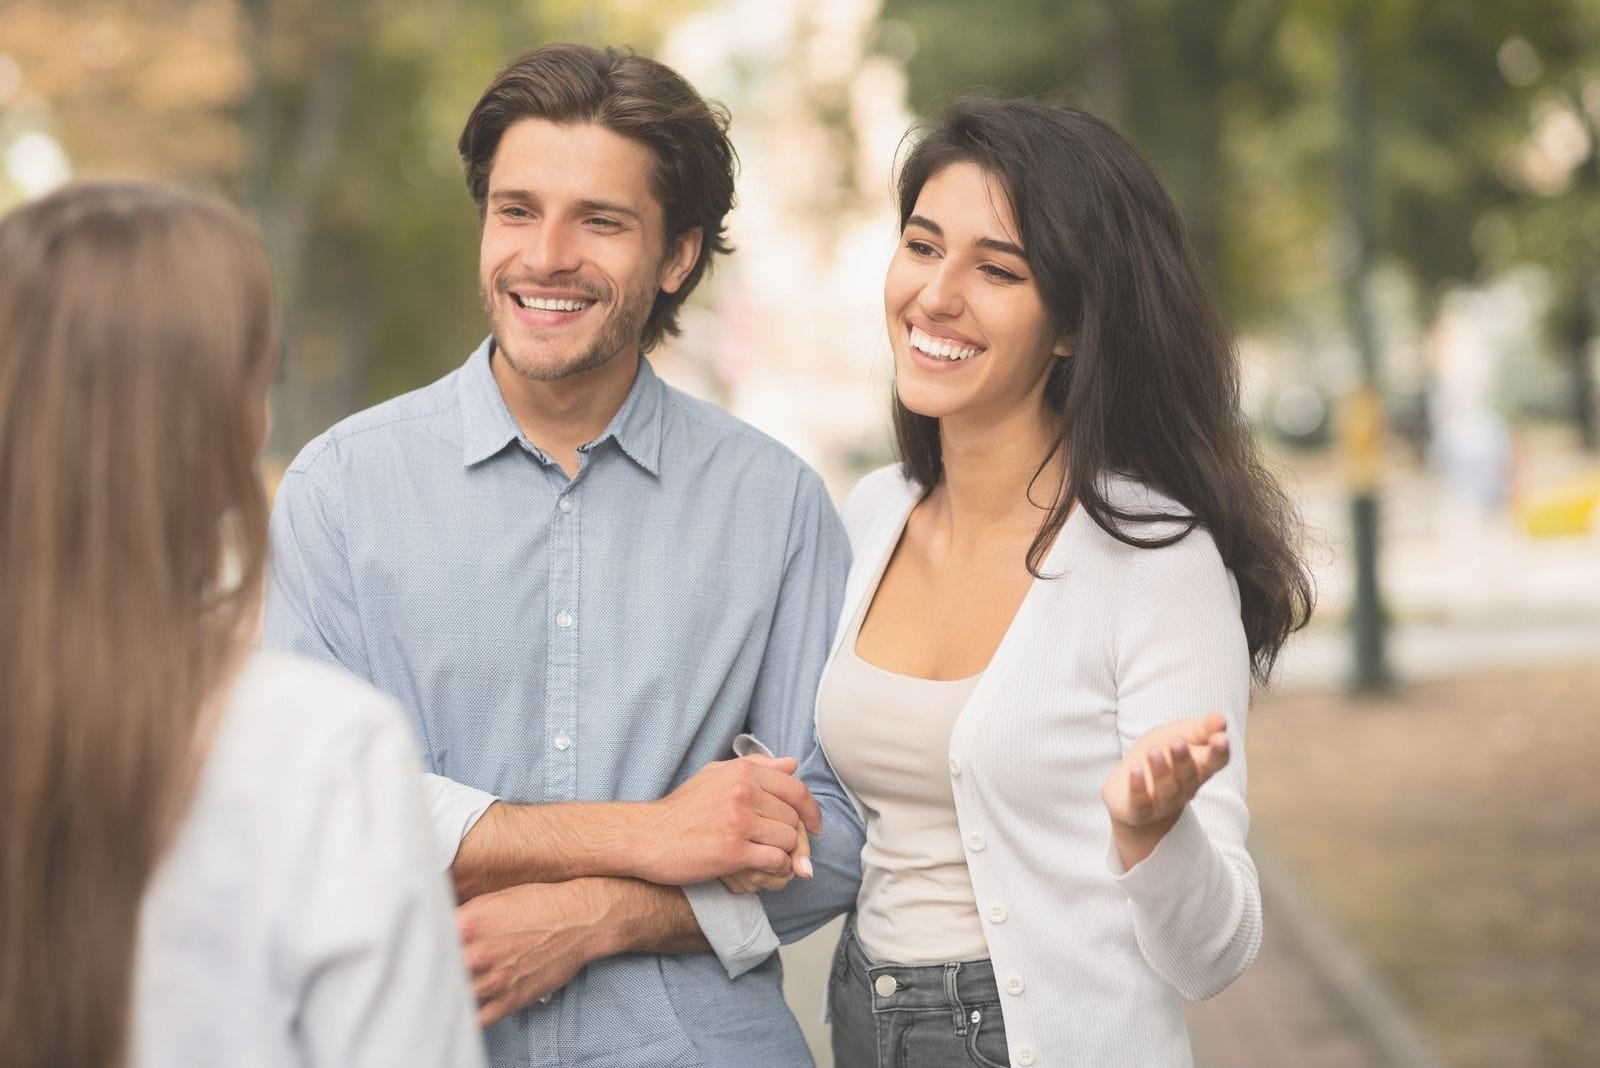 married couple meeting a single lady in the streets